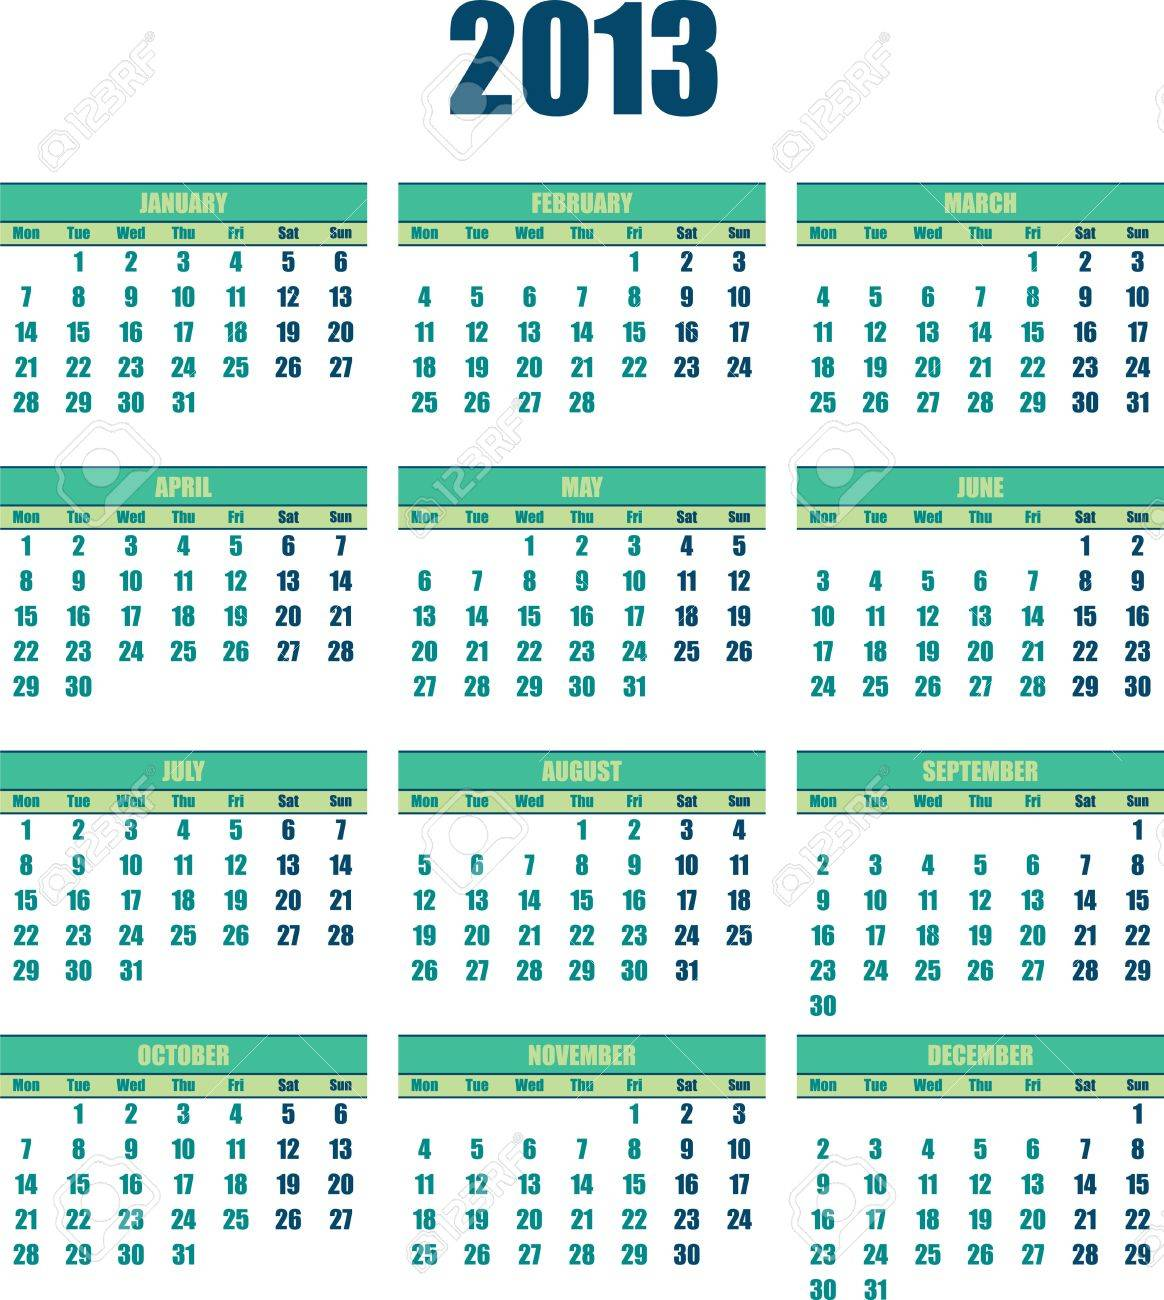 The 2013 Green Calender